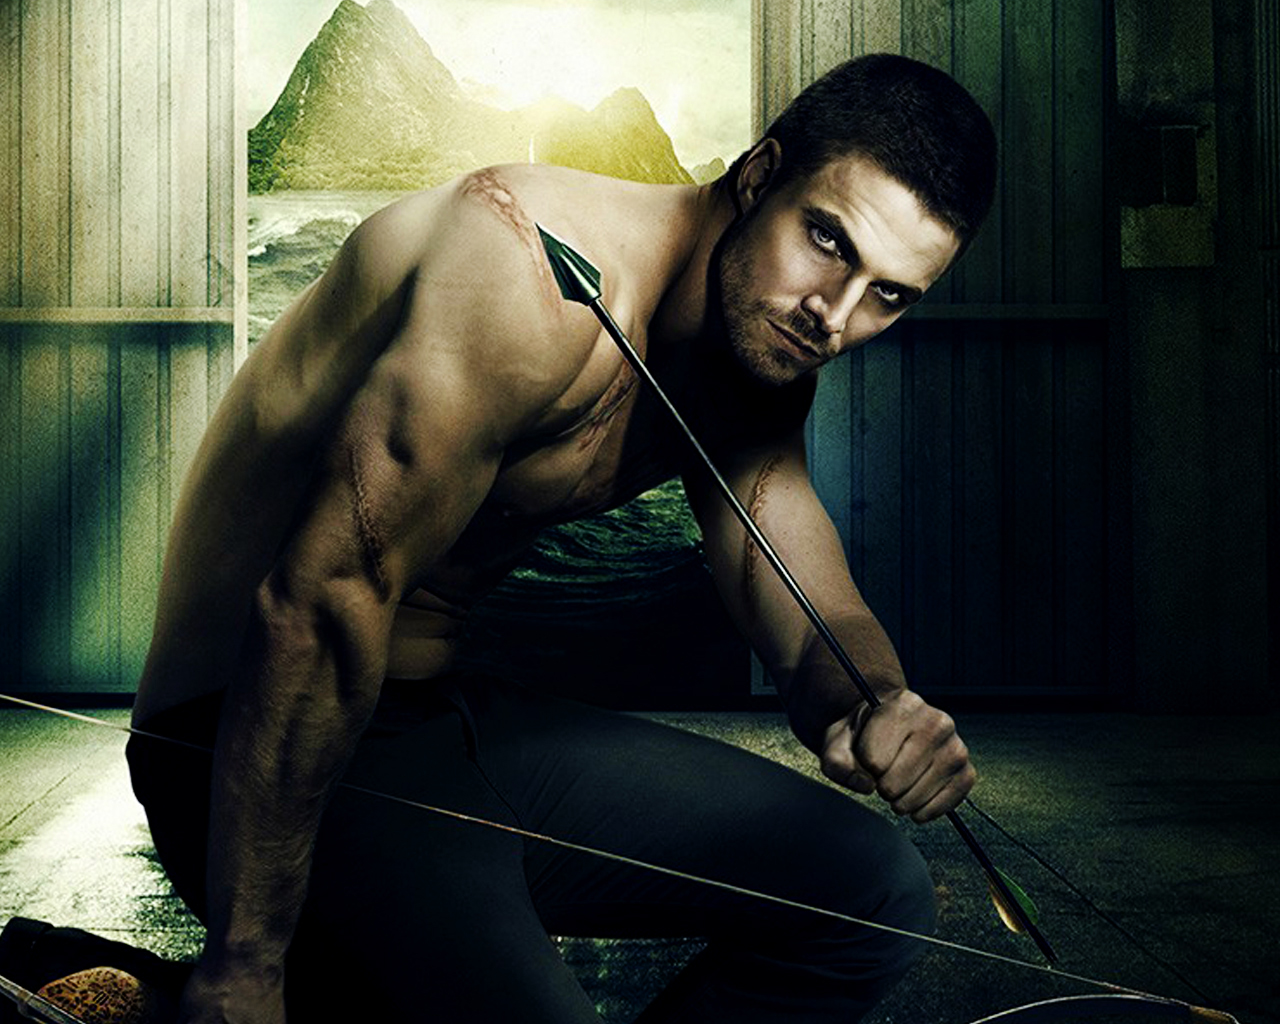 Arrow arrow cw 34183851 1280 1024jpg 1280x1024